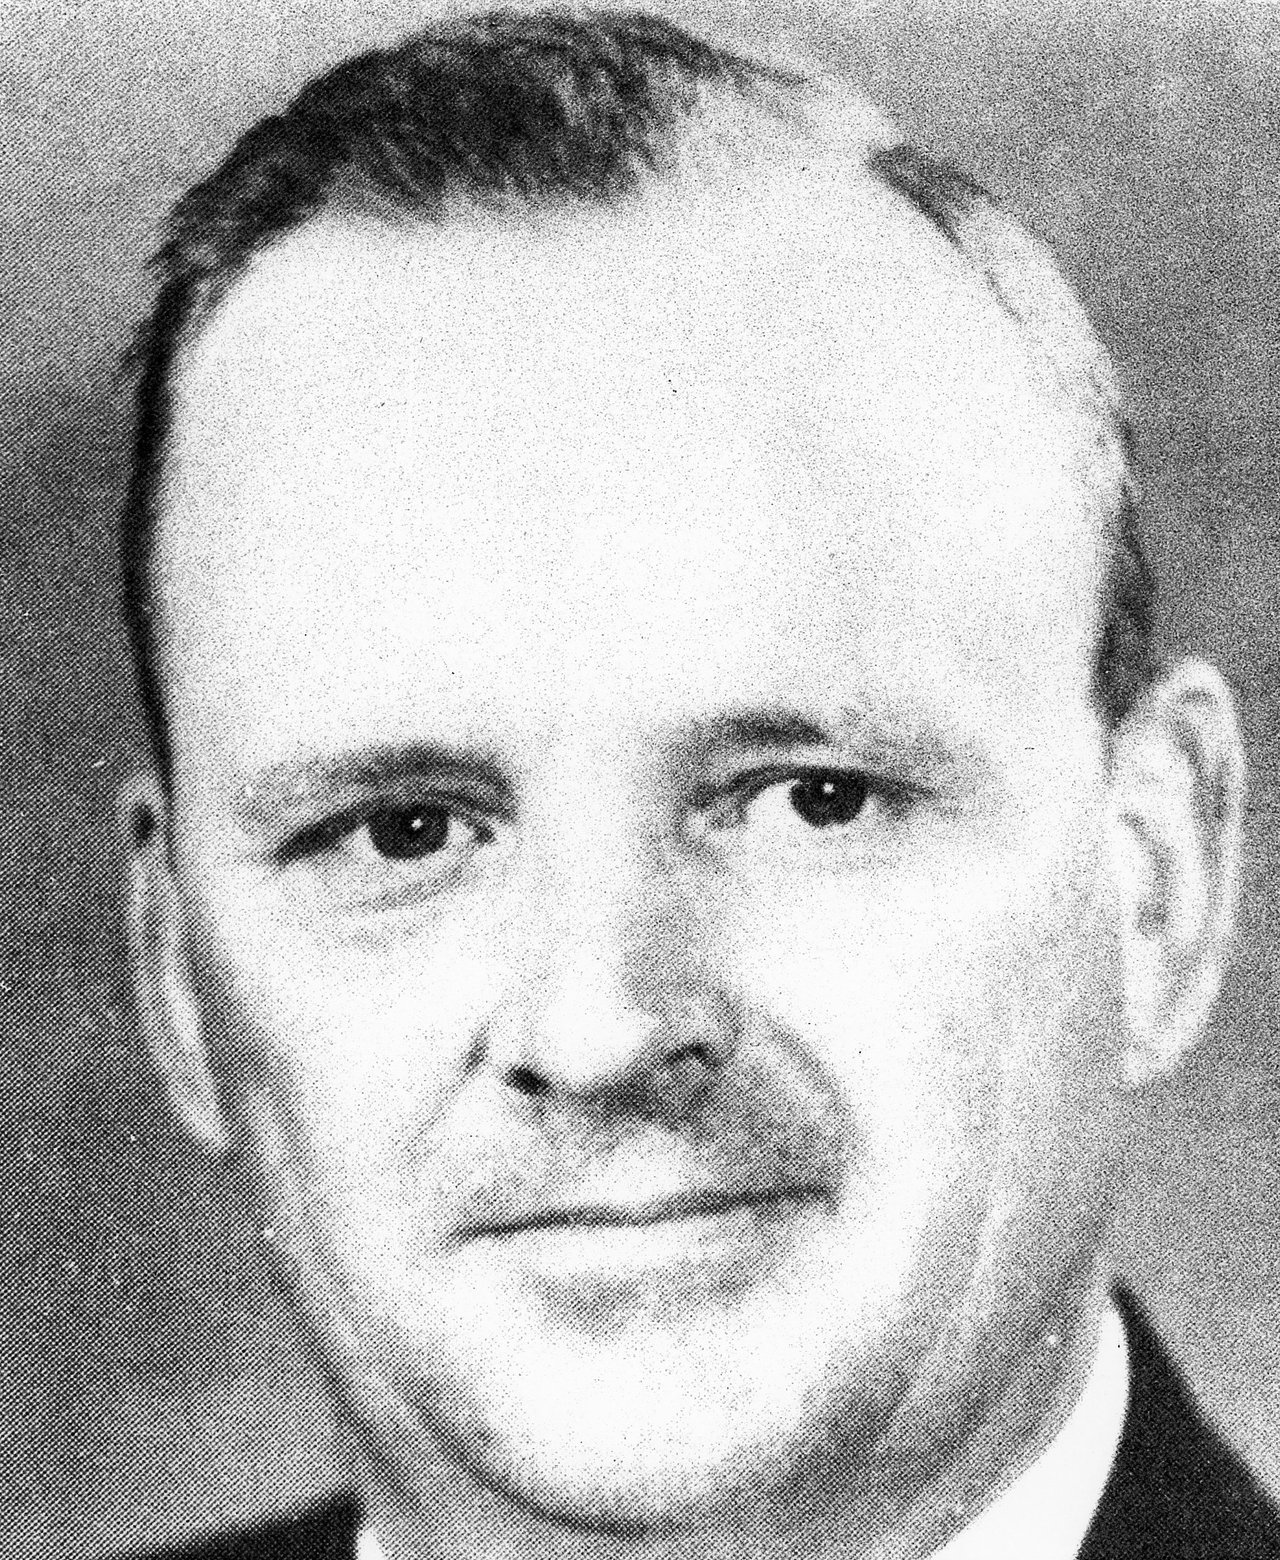 May 1, 1970 - BCI Captain Samuel N. Rowe